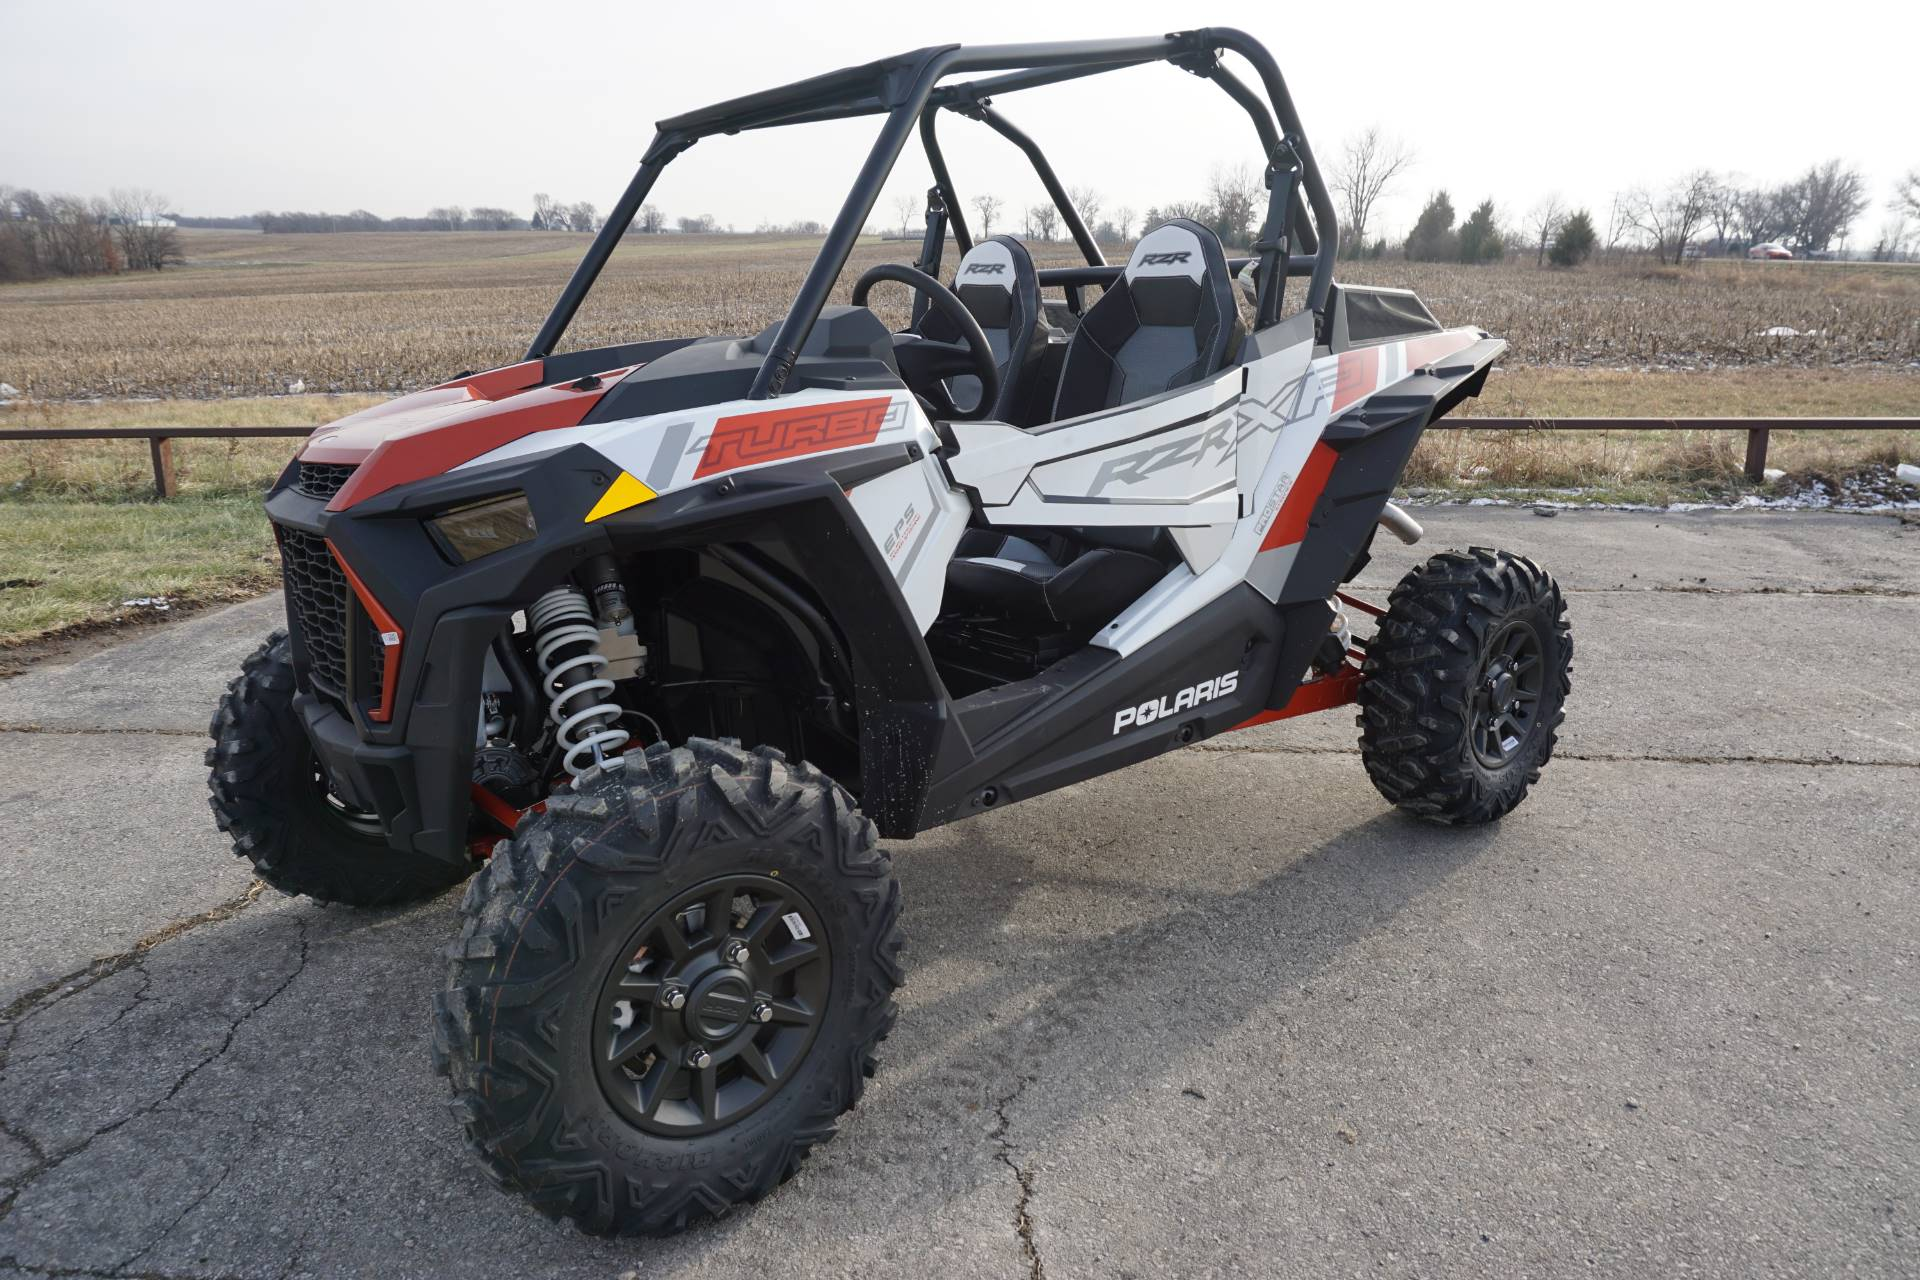 2019 Polaris RZR XP Turbo for sale 11710